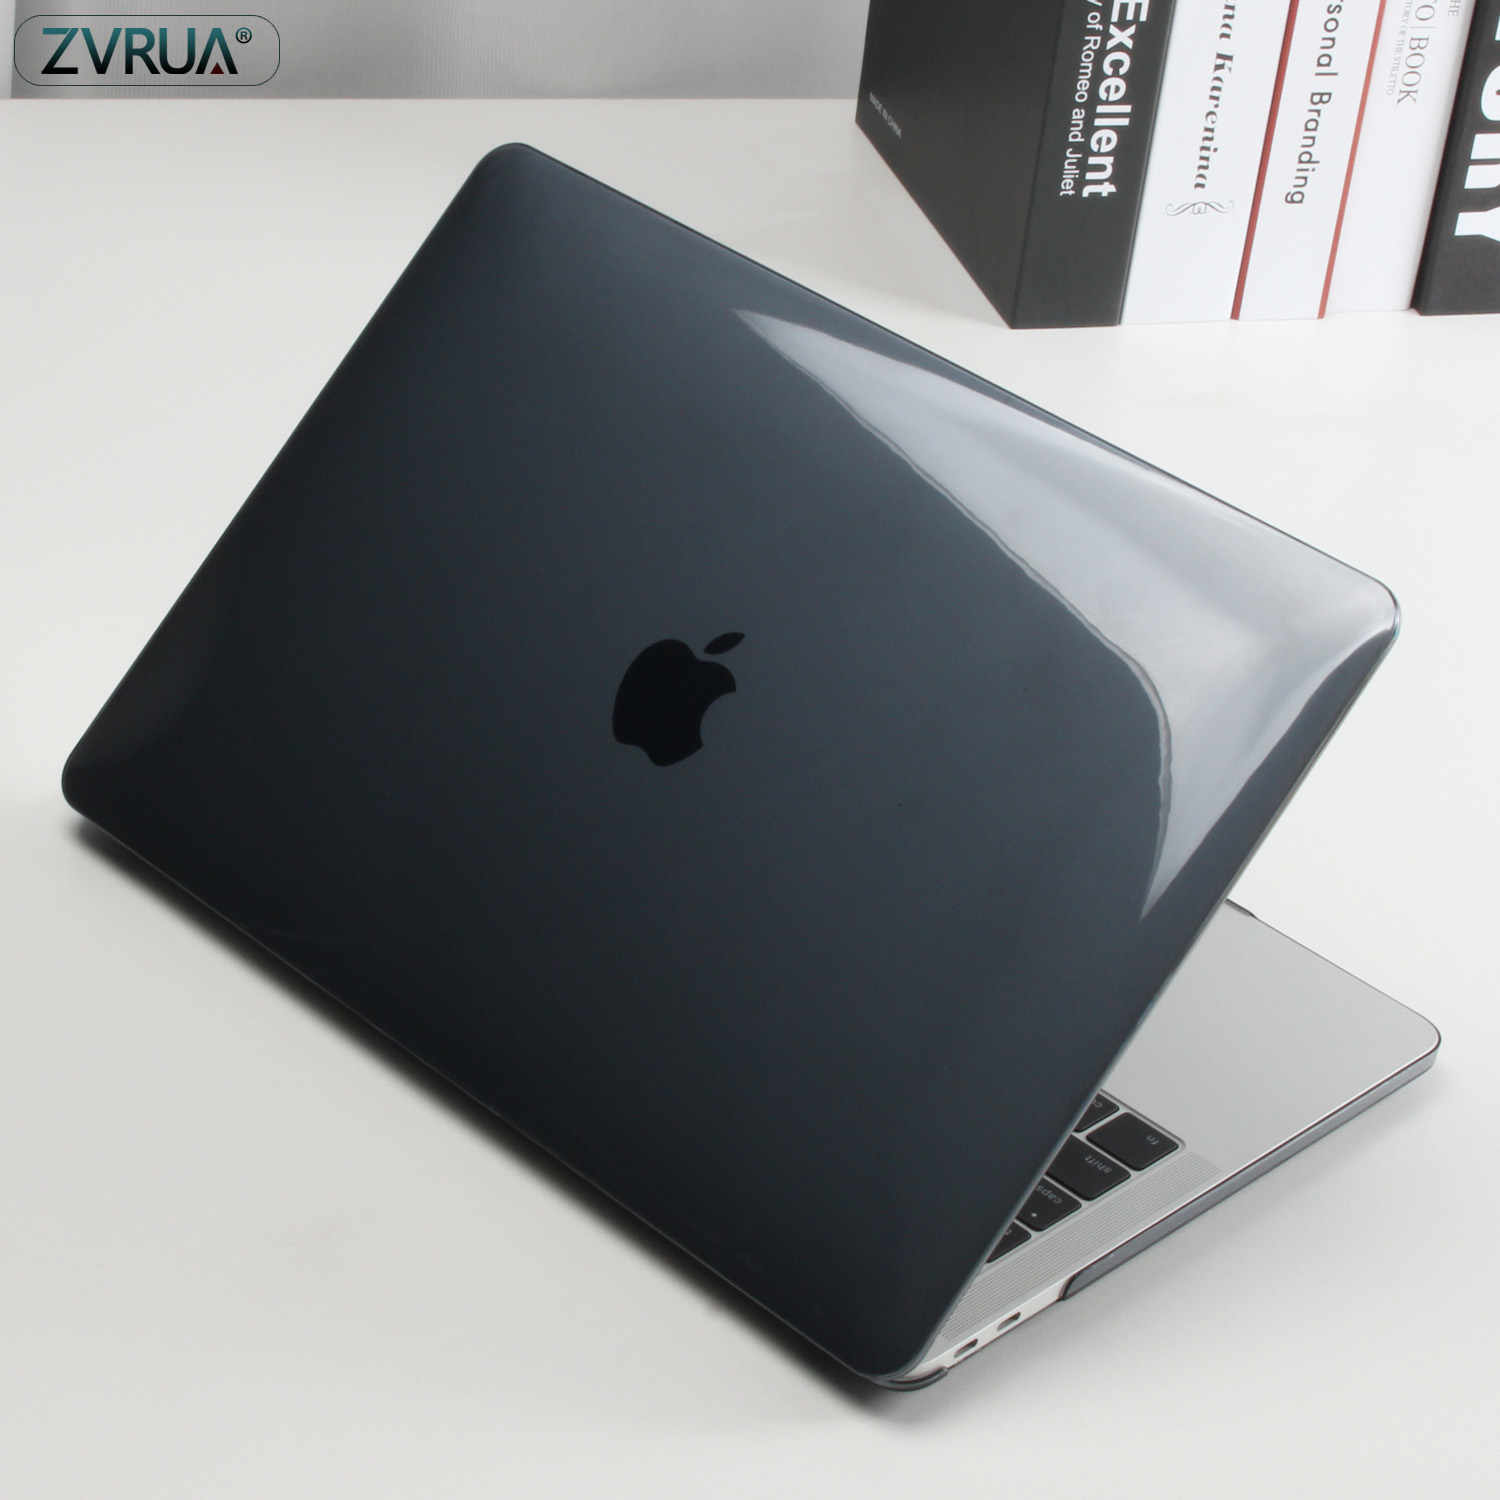 Crystal Transparent Case For MacBook Air Pro Retina 11 12 13 15 16 2019 Mac Book 13.3 A1706 A2159 15.4 Inch New Touch Bar A1990